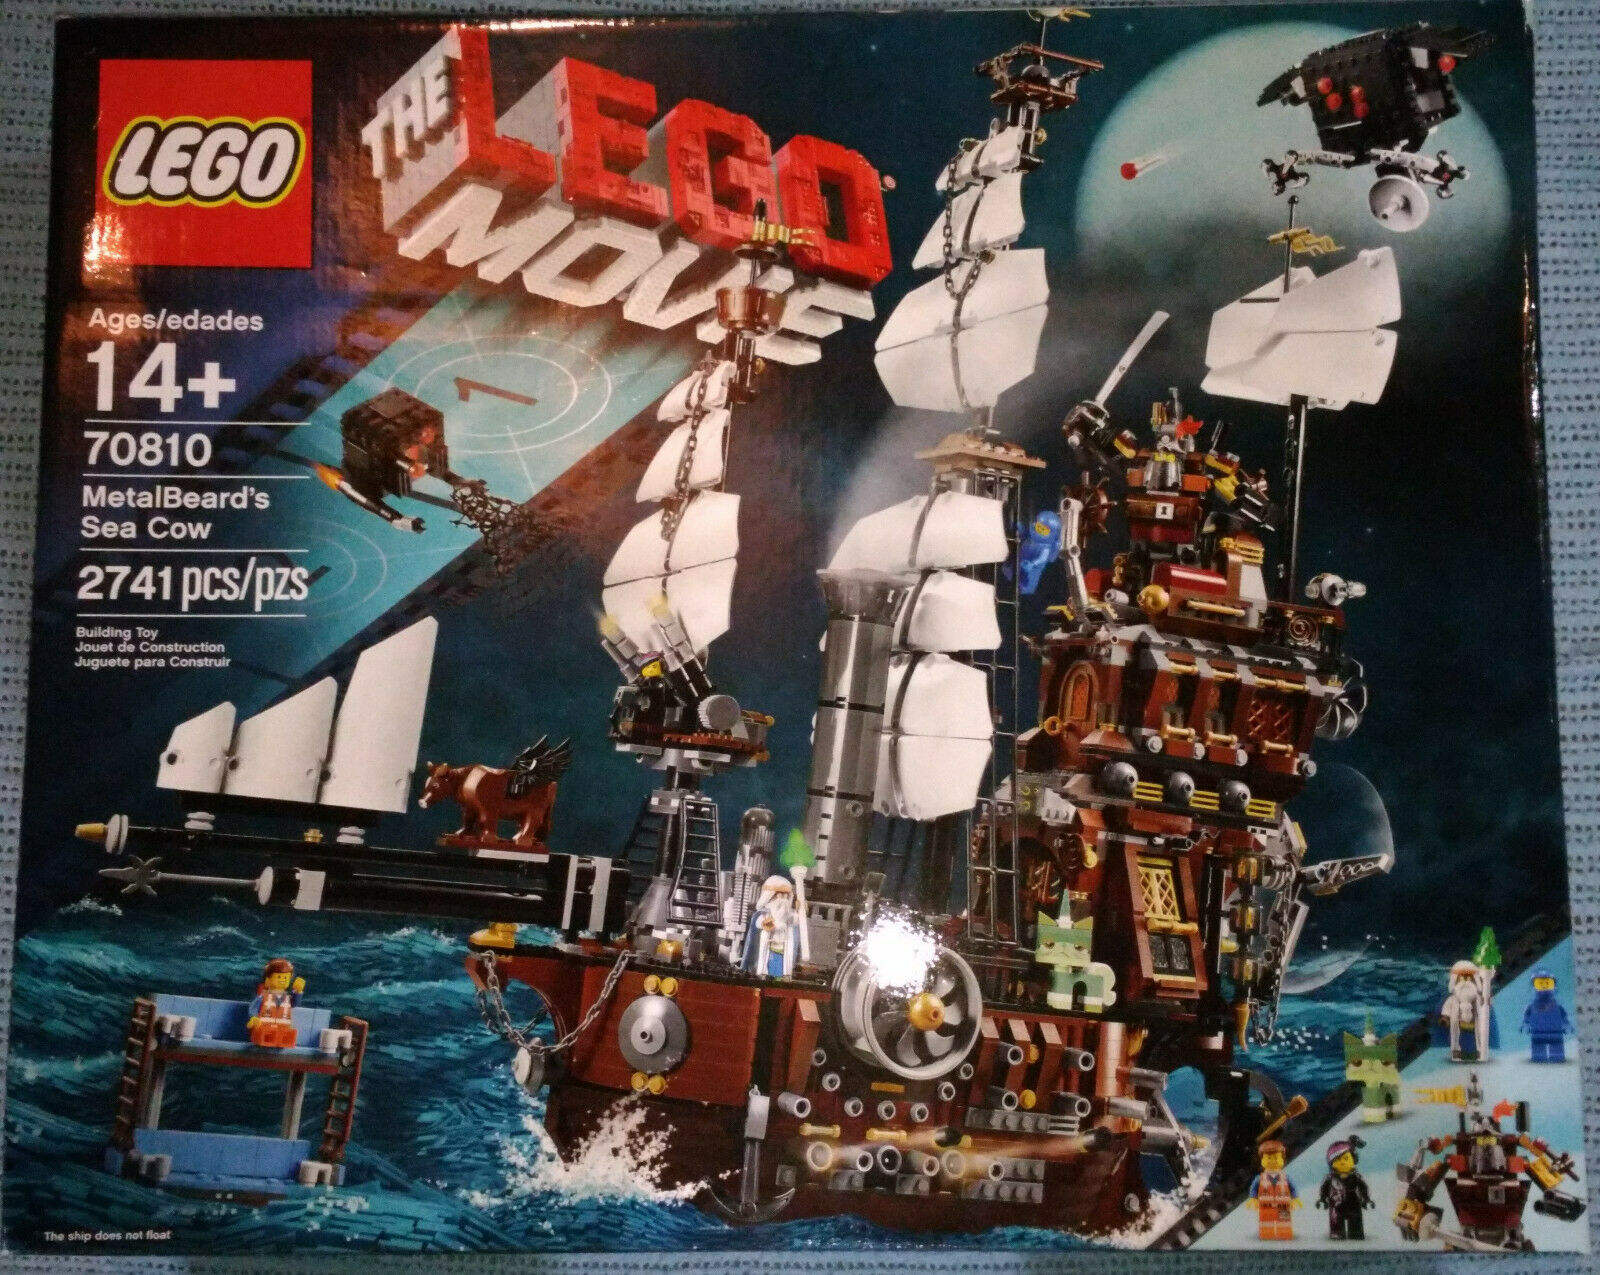 Cow70810Discontinued Movie Metalbeard's Lego The Sea SMqVzUp